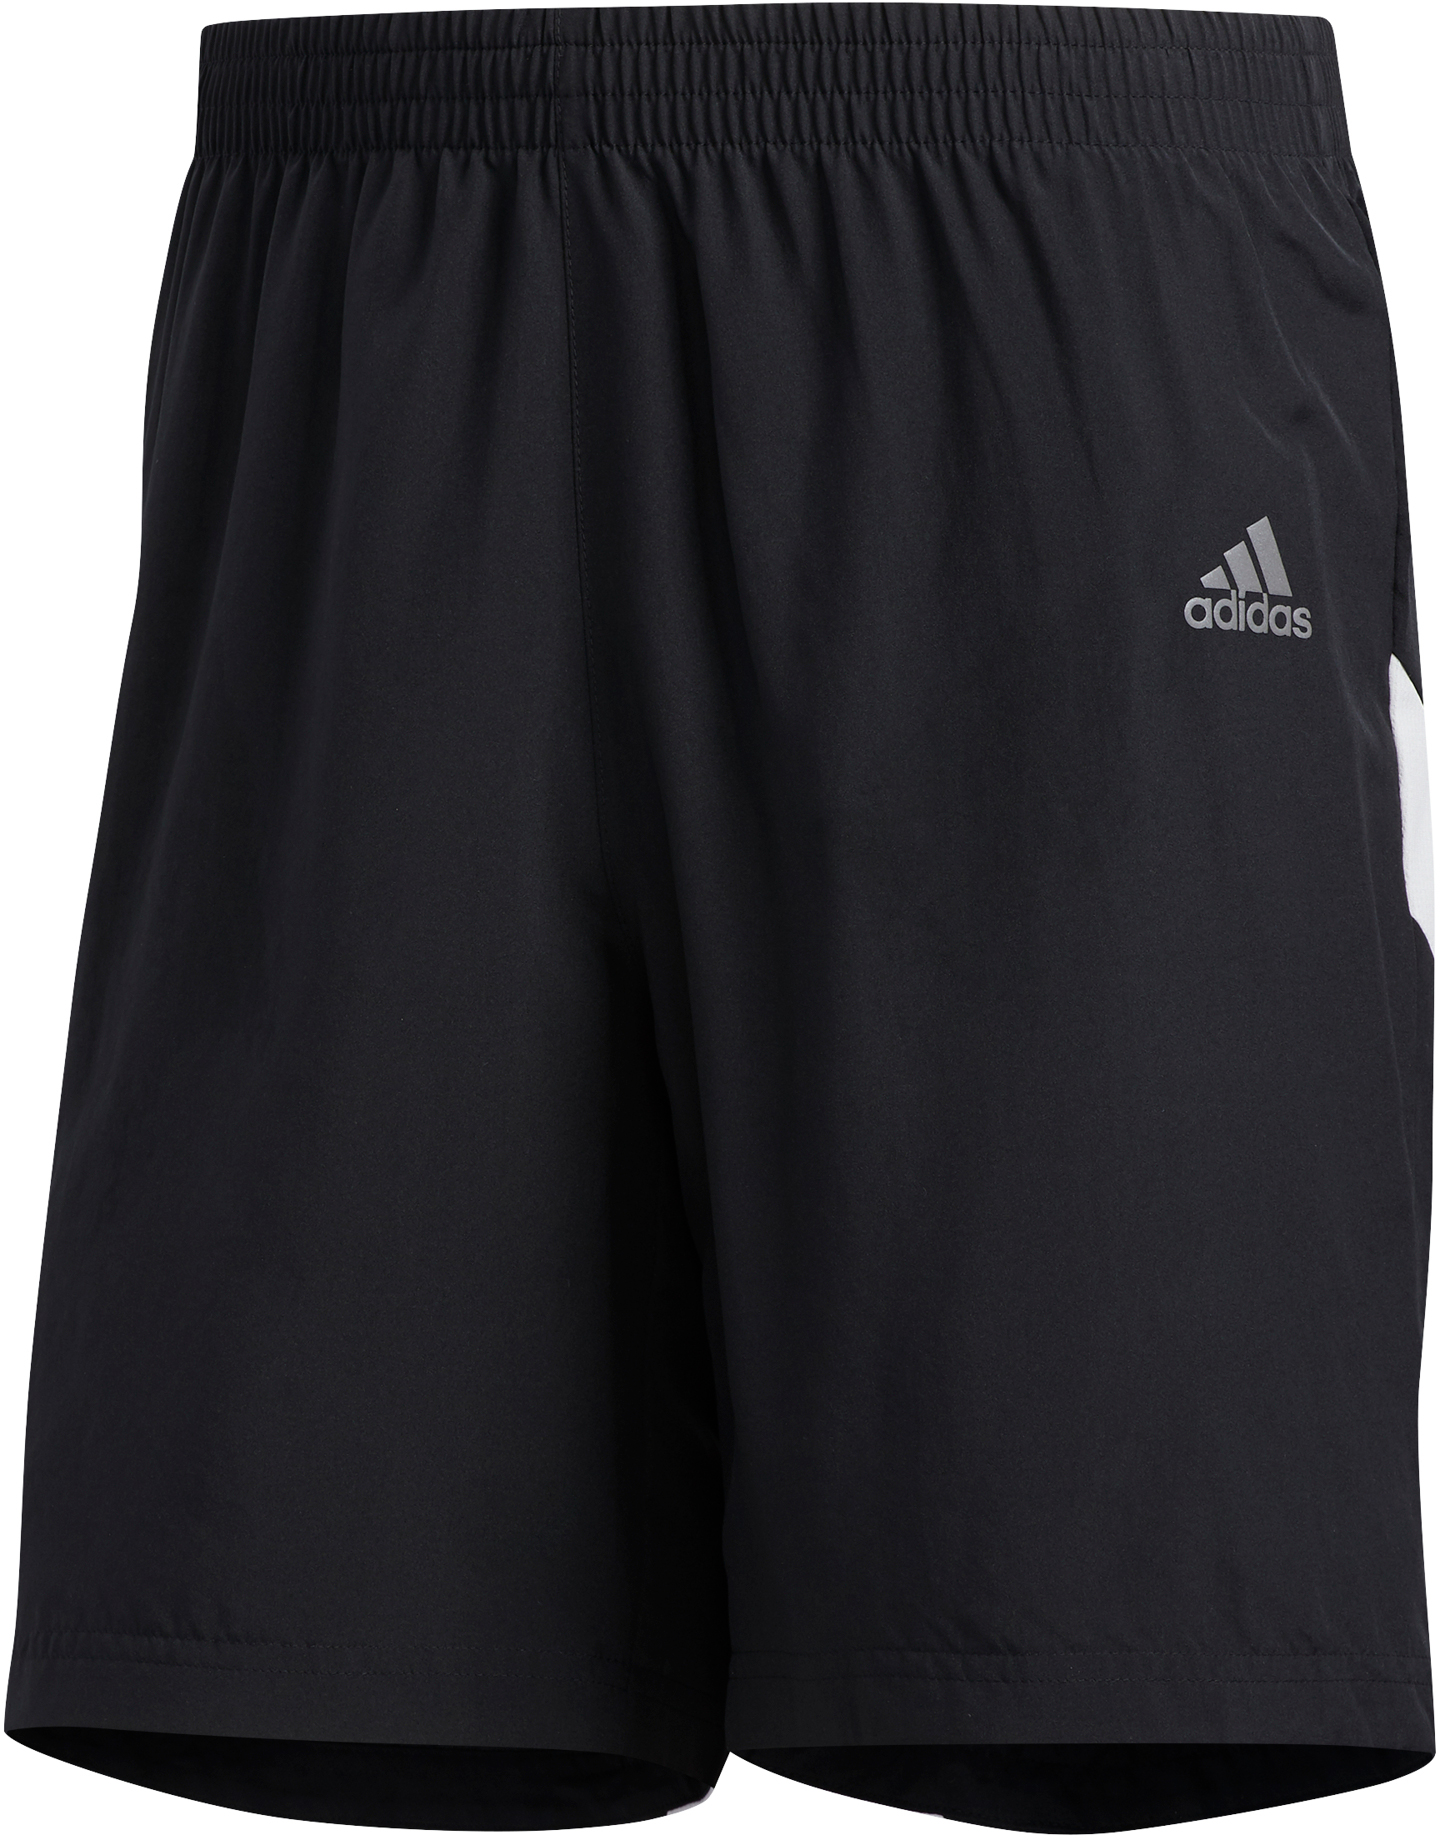 adidas Own The Run Short 7